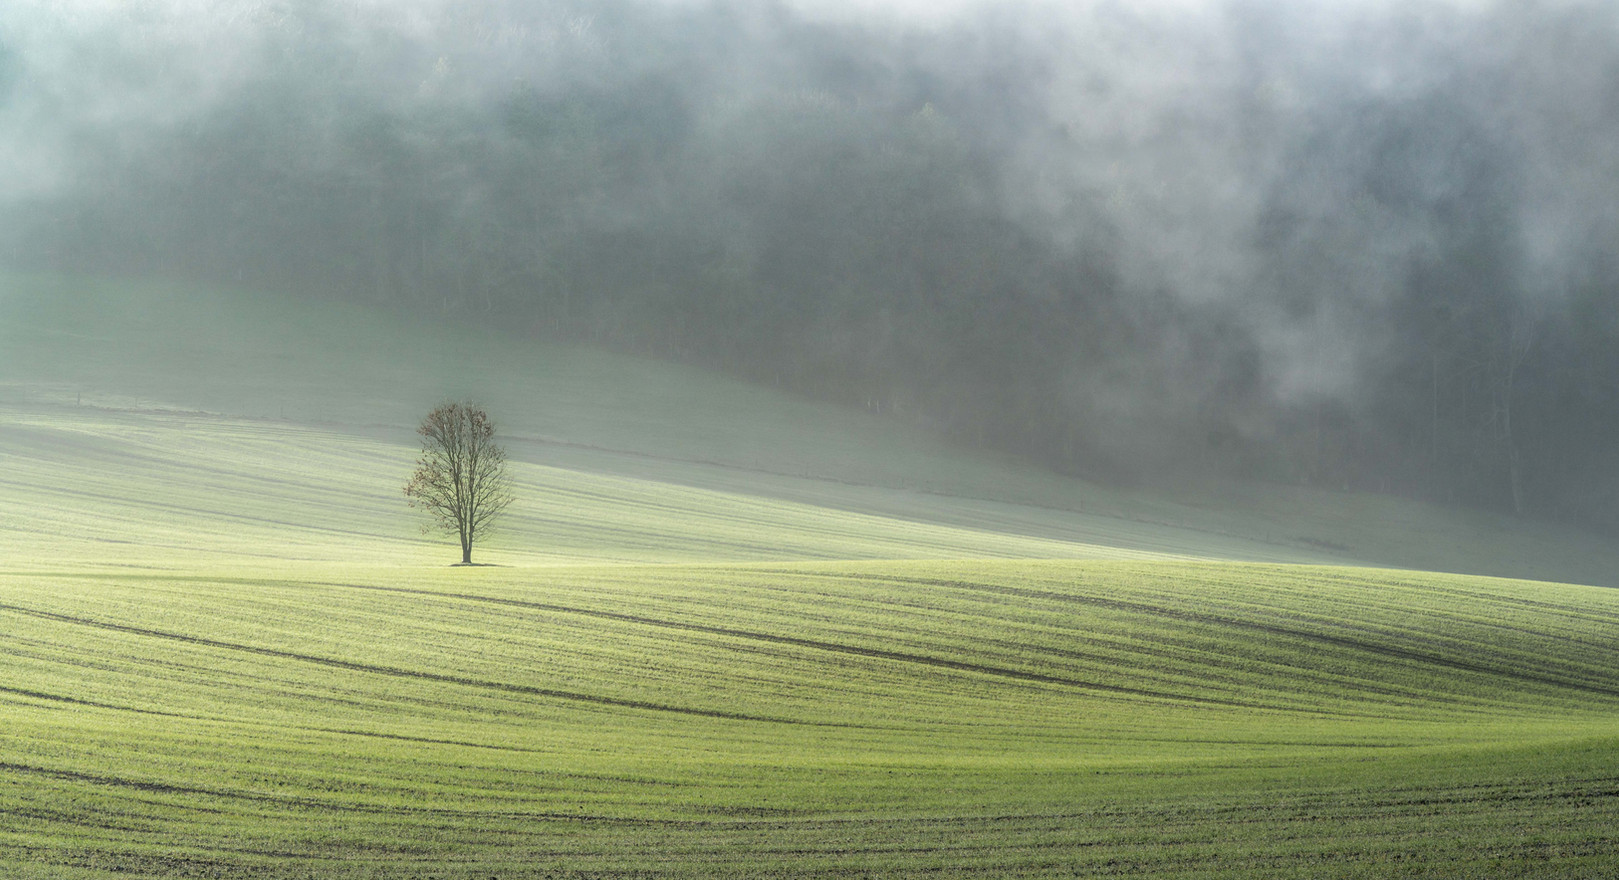 Lone Tree in Morning Mist